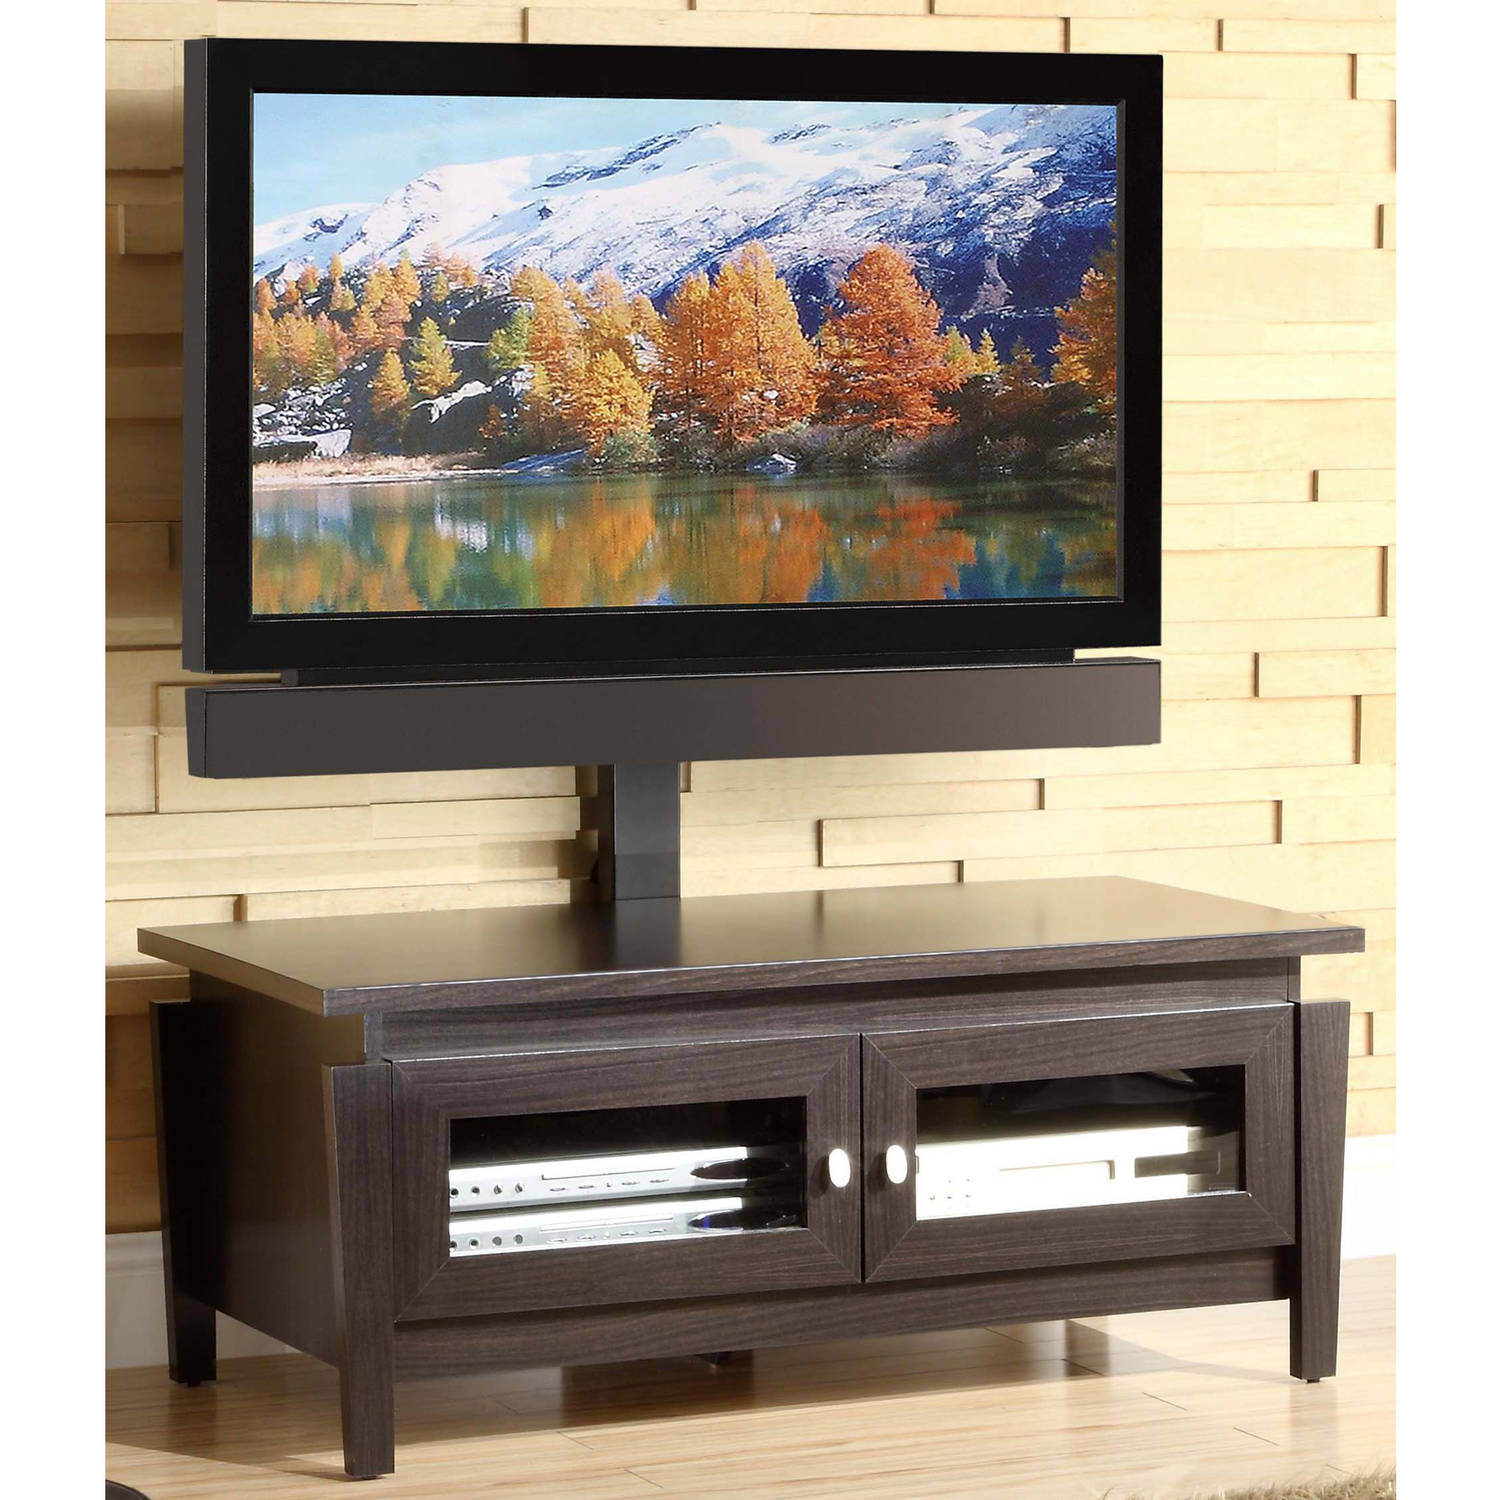 Beautiful whalen tv stand for furniture accessories design with whalen 3-in-1 tv stand